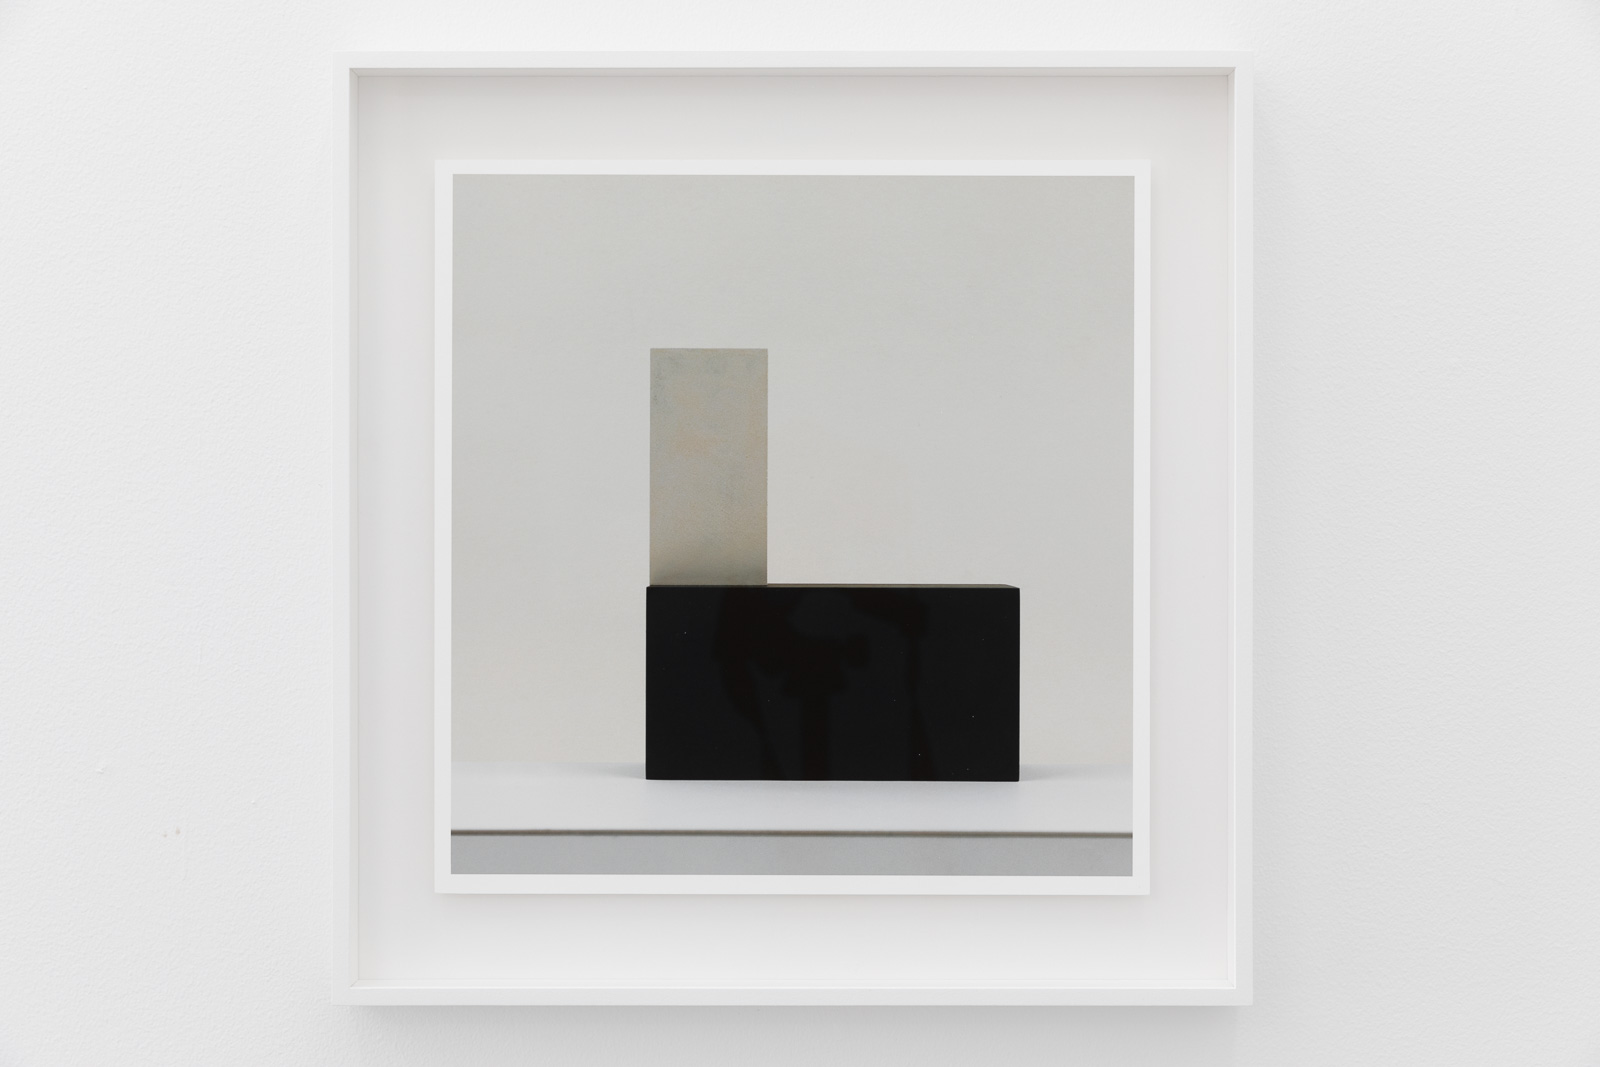 40 Pictures No 35/40, 2019. Archival inkjet print on Canson rag 210 gr. mounted on white acrylic glass. 33,4 x 32,5 cm. Ed. 5 + 2AP